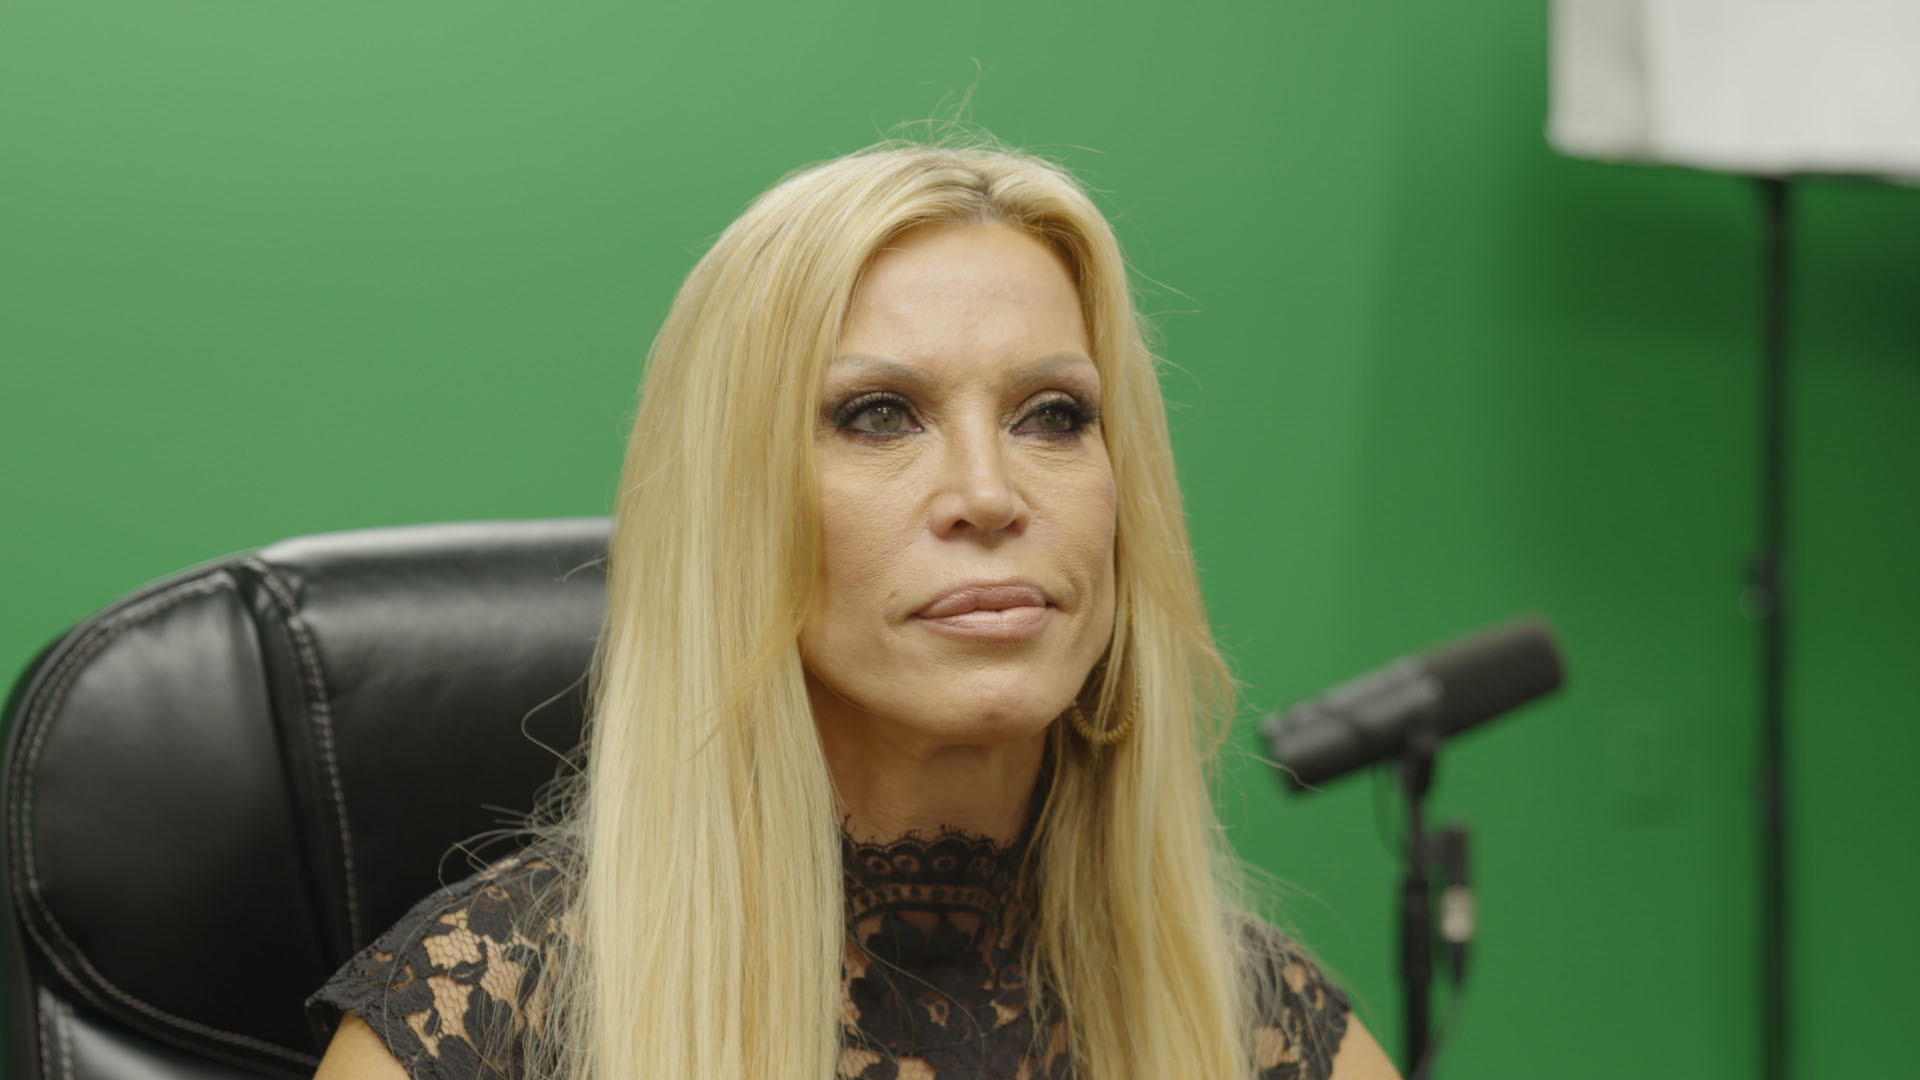 Amber Lynn Porn Clips adult film star raises concerns over the state of porn performers' mental  health